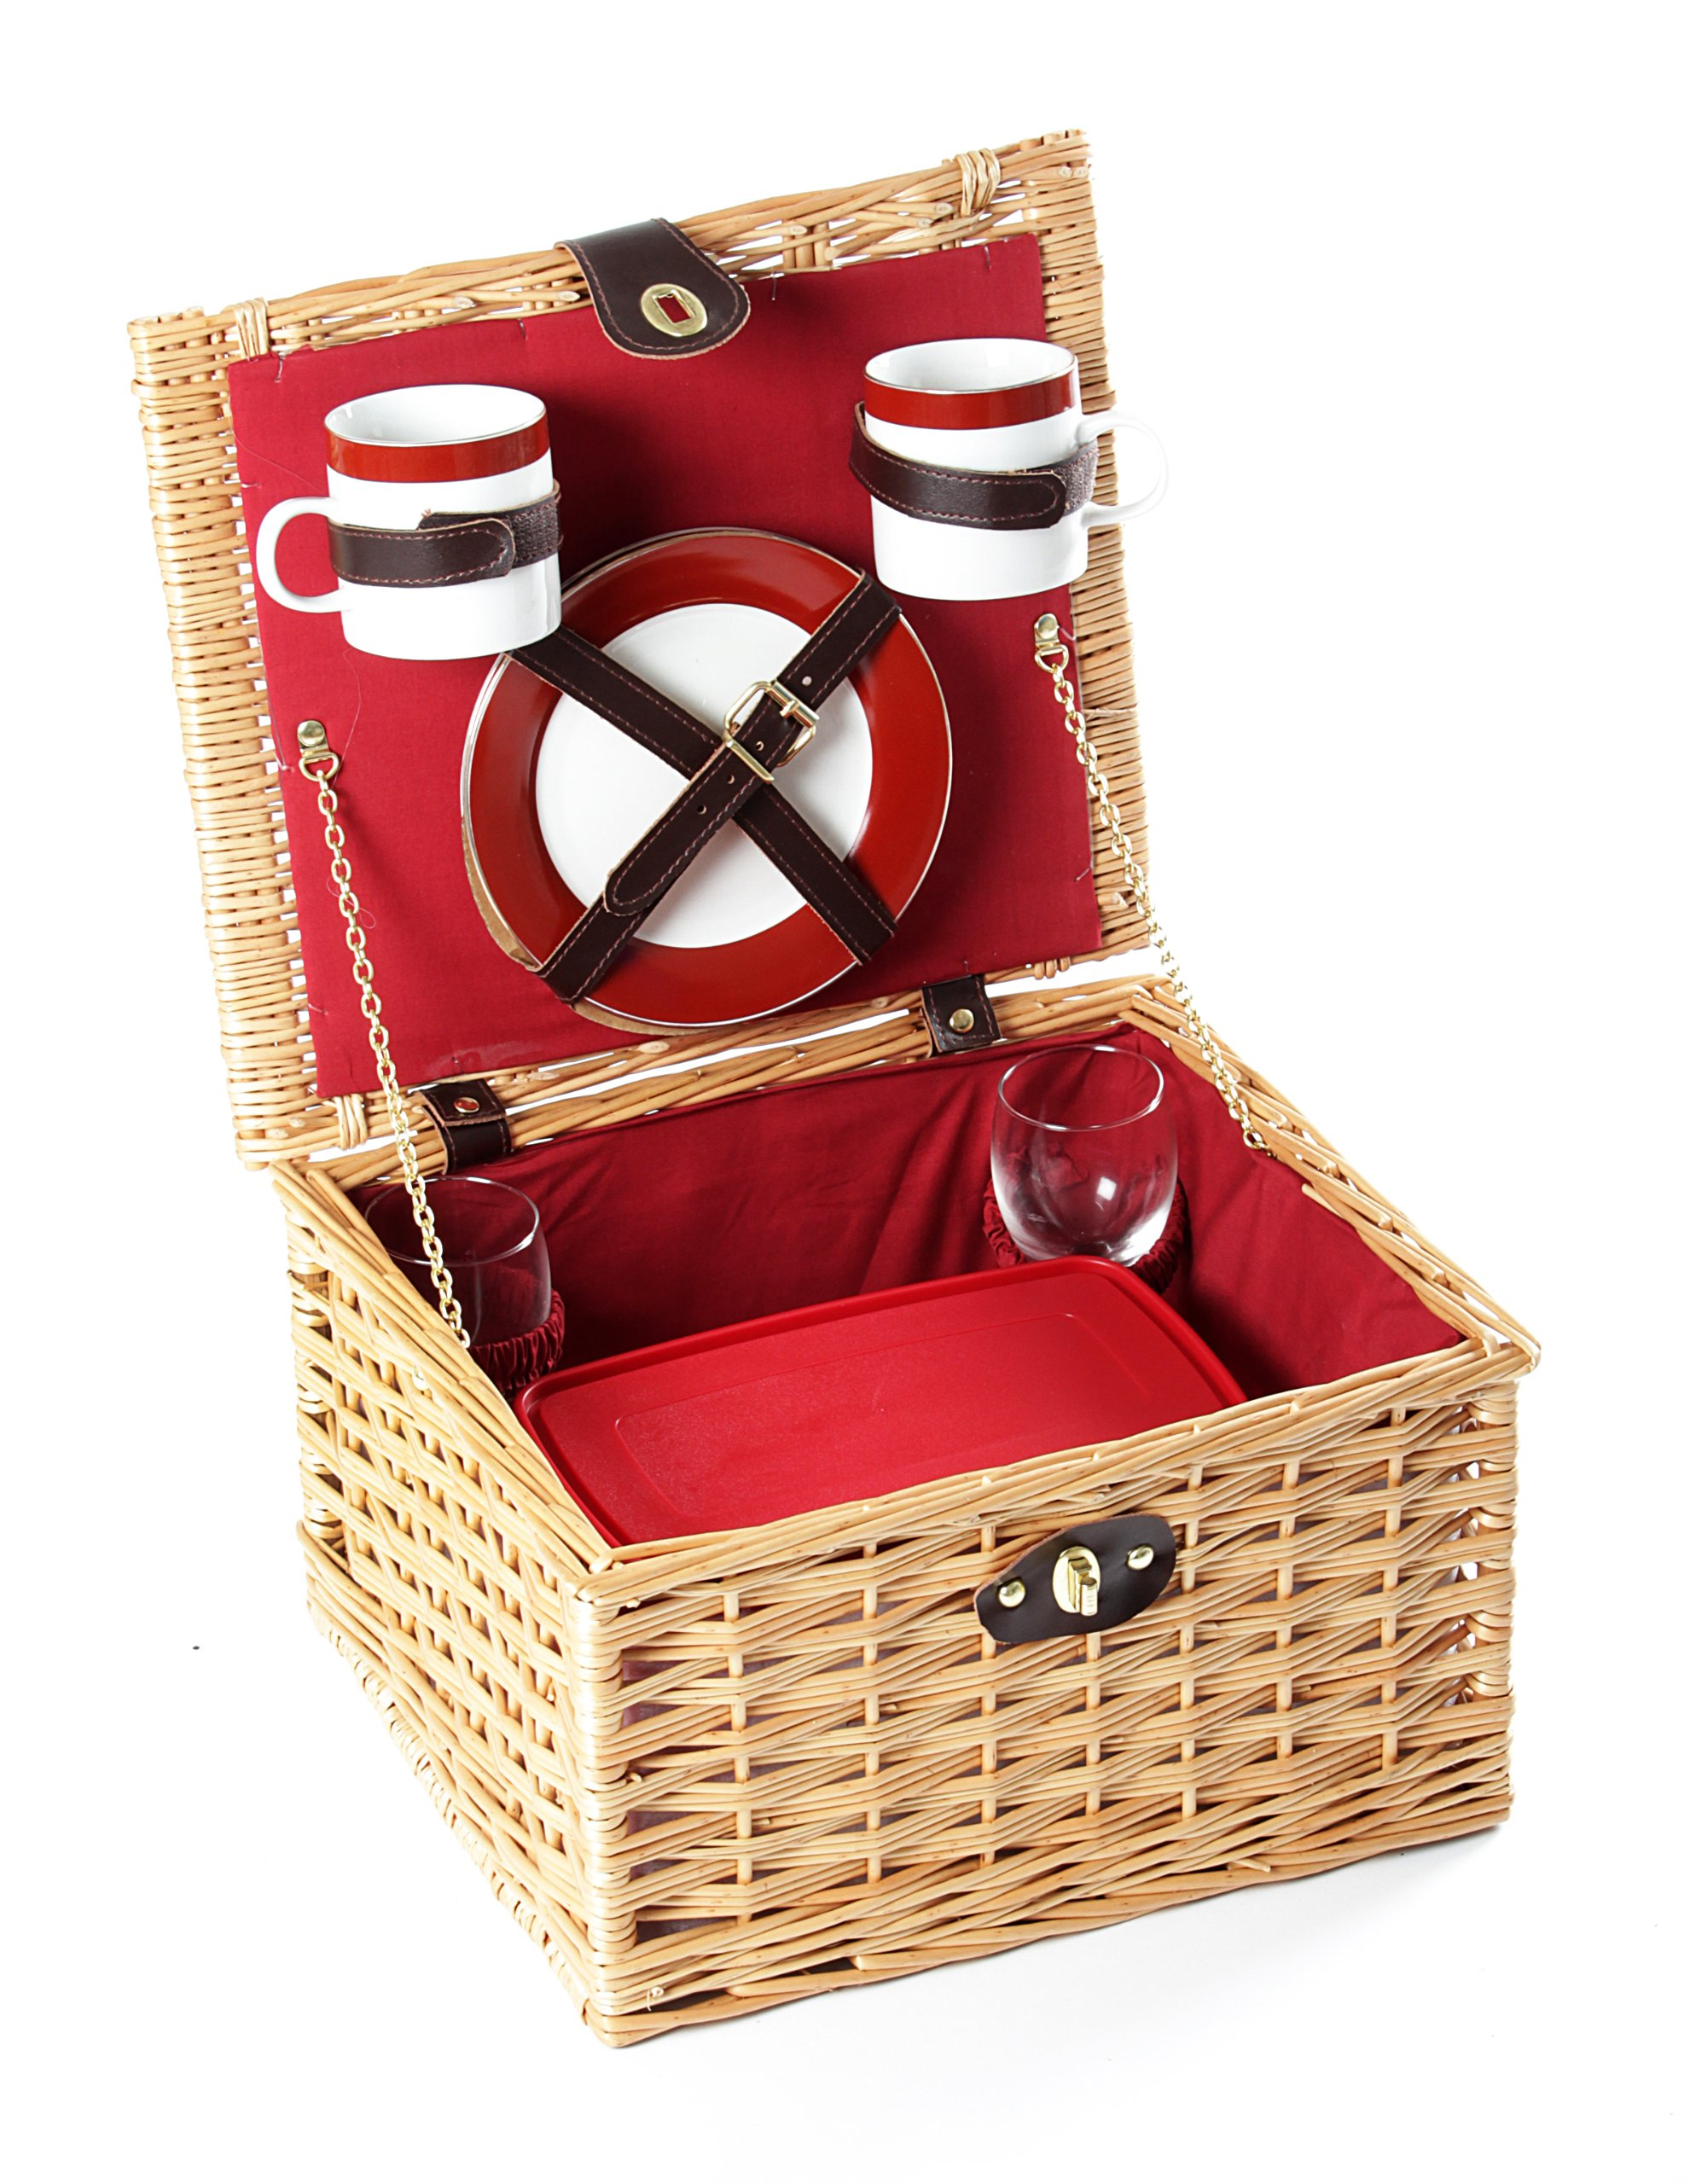 Greenfield Collection Dorchester Willow Picnic Hamper for Two People